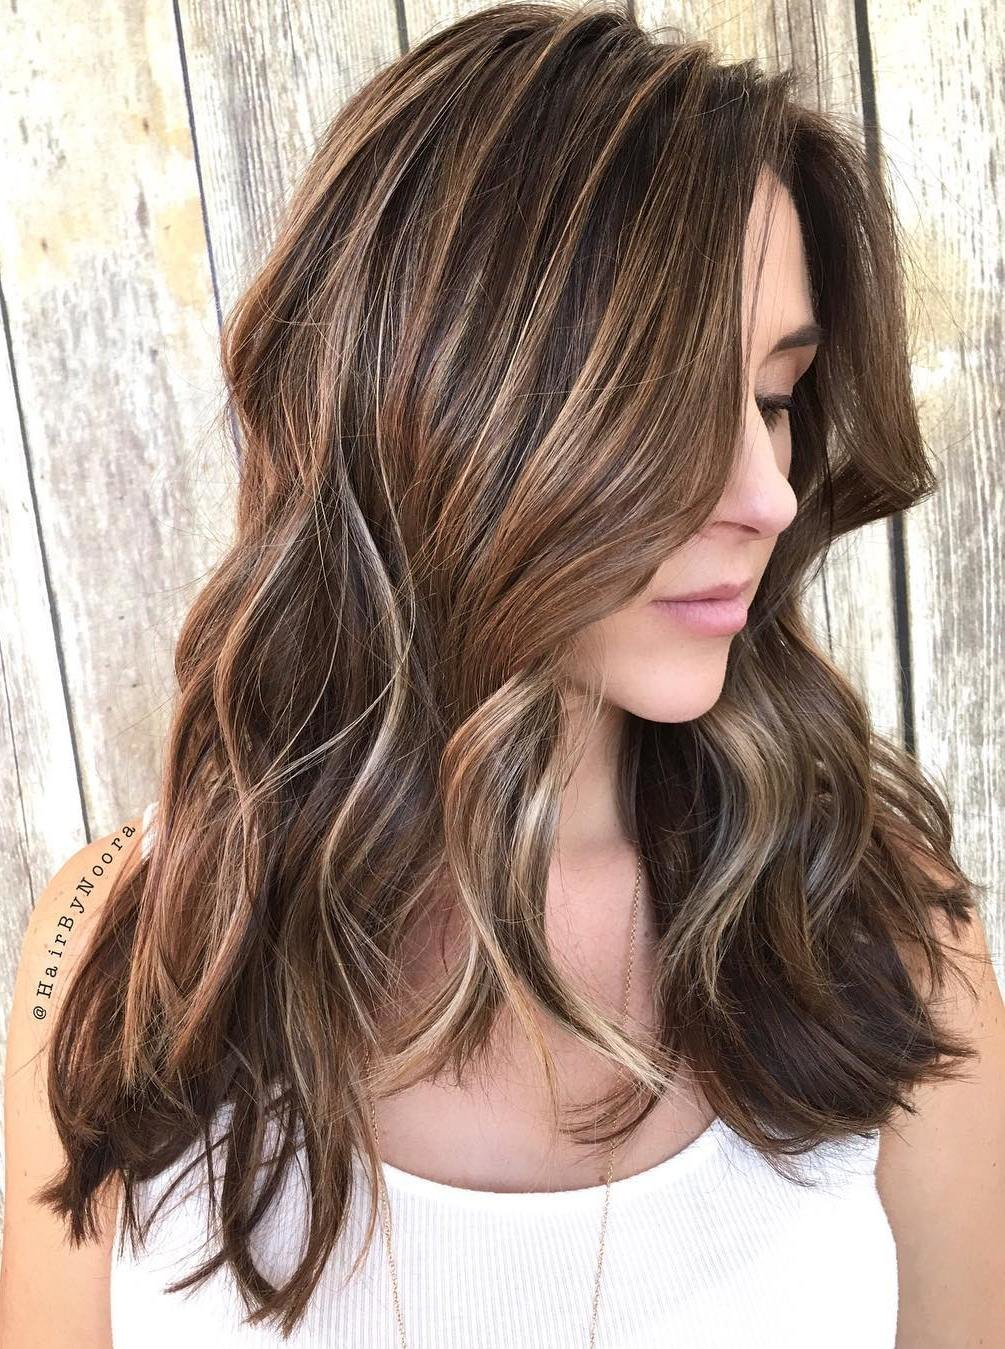 Free 50 Light Brown Hair Color Ideas With Highlights And Lowlights Wallpaper